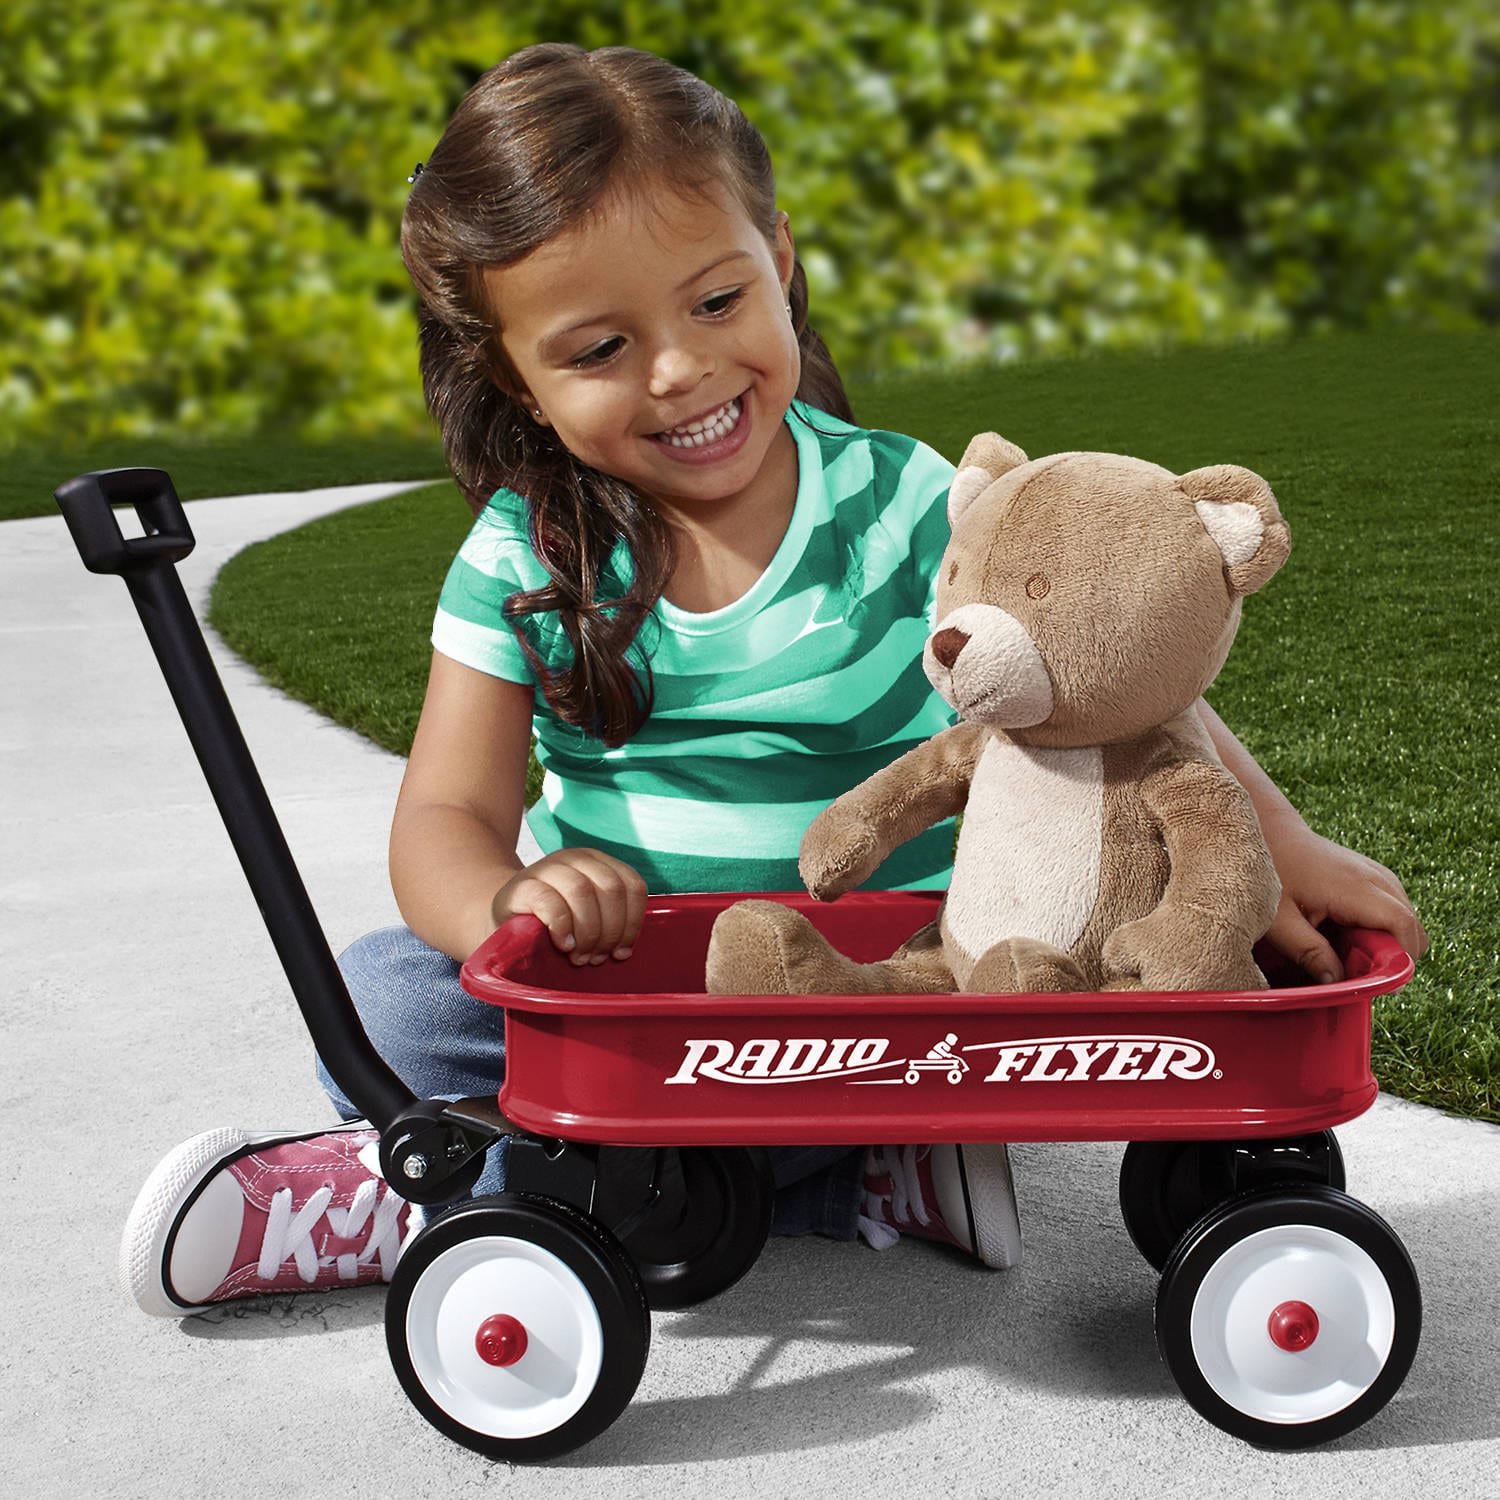 Radio Flyer Kids Little Red Toy Wagon  $11.25 + Free Store Pick-Up